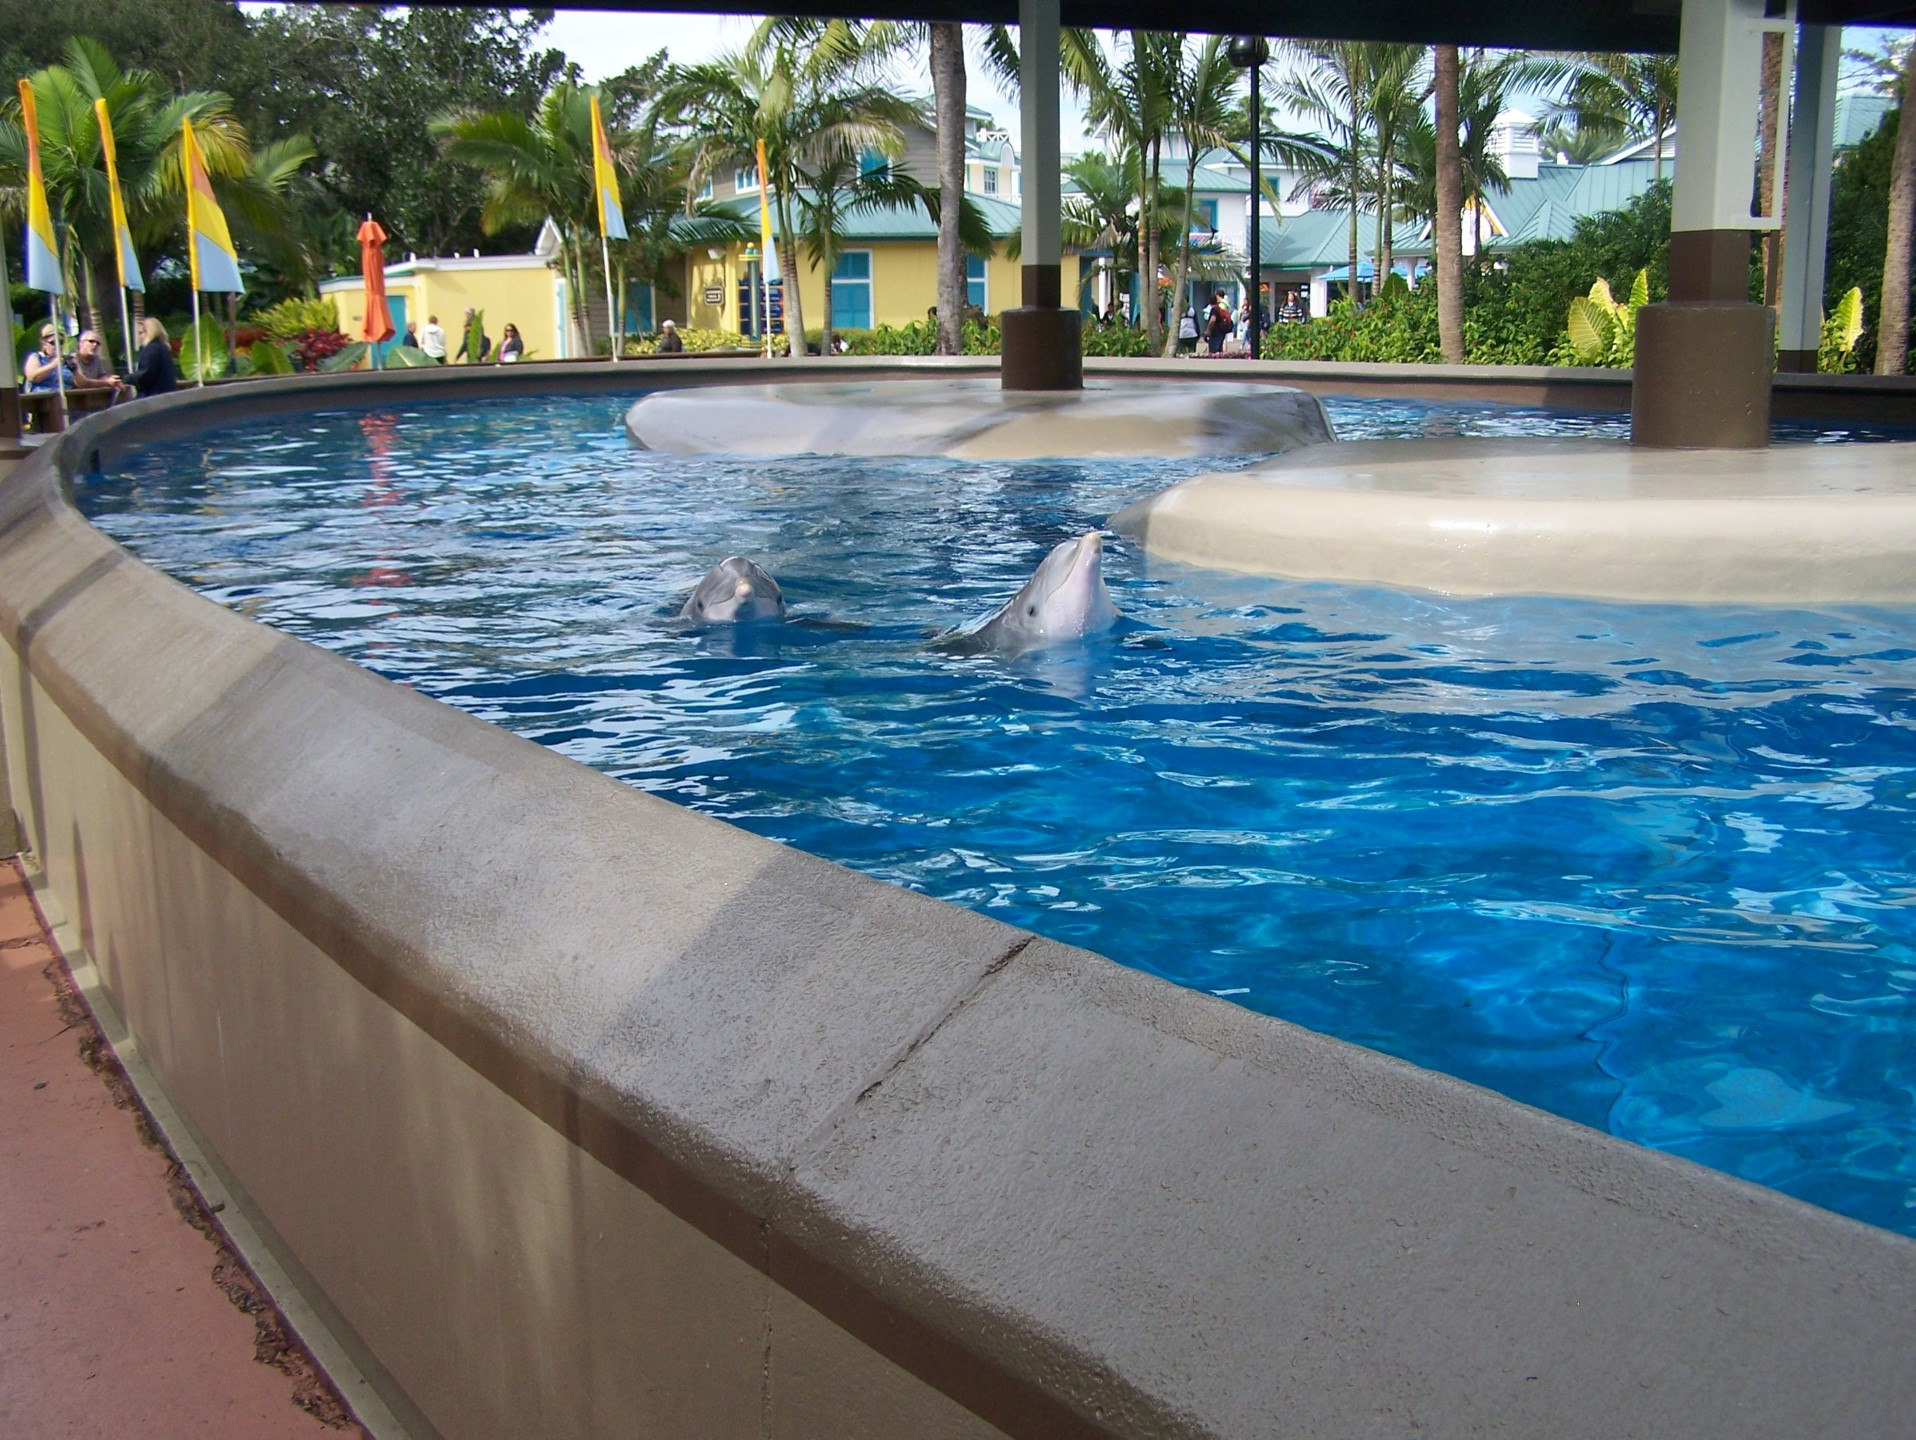 Sea World in Florida